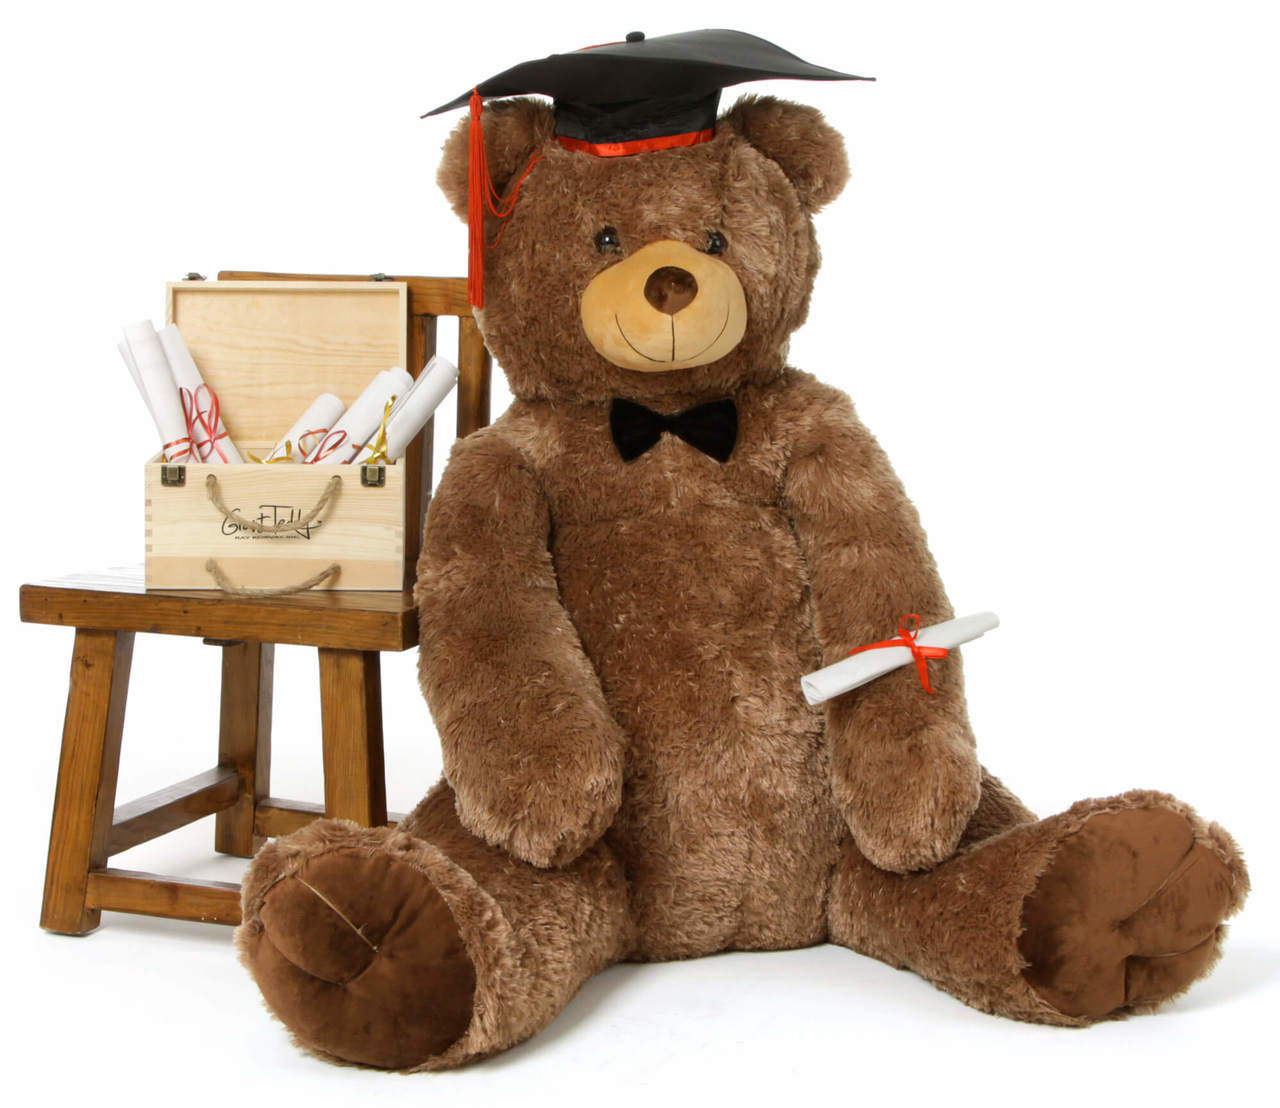 52in Life Size Graduation Teddy Bear Sweetie Tubs